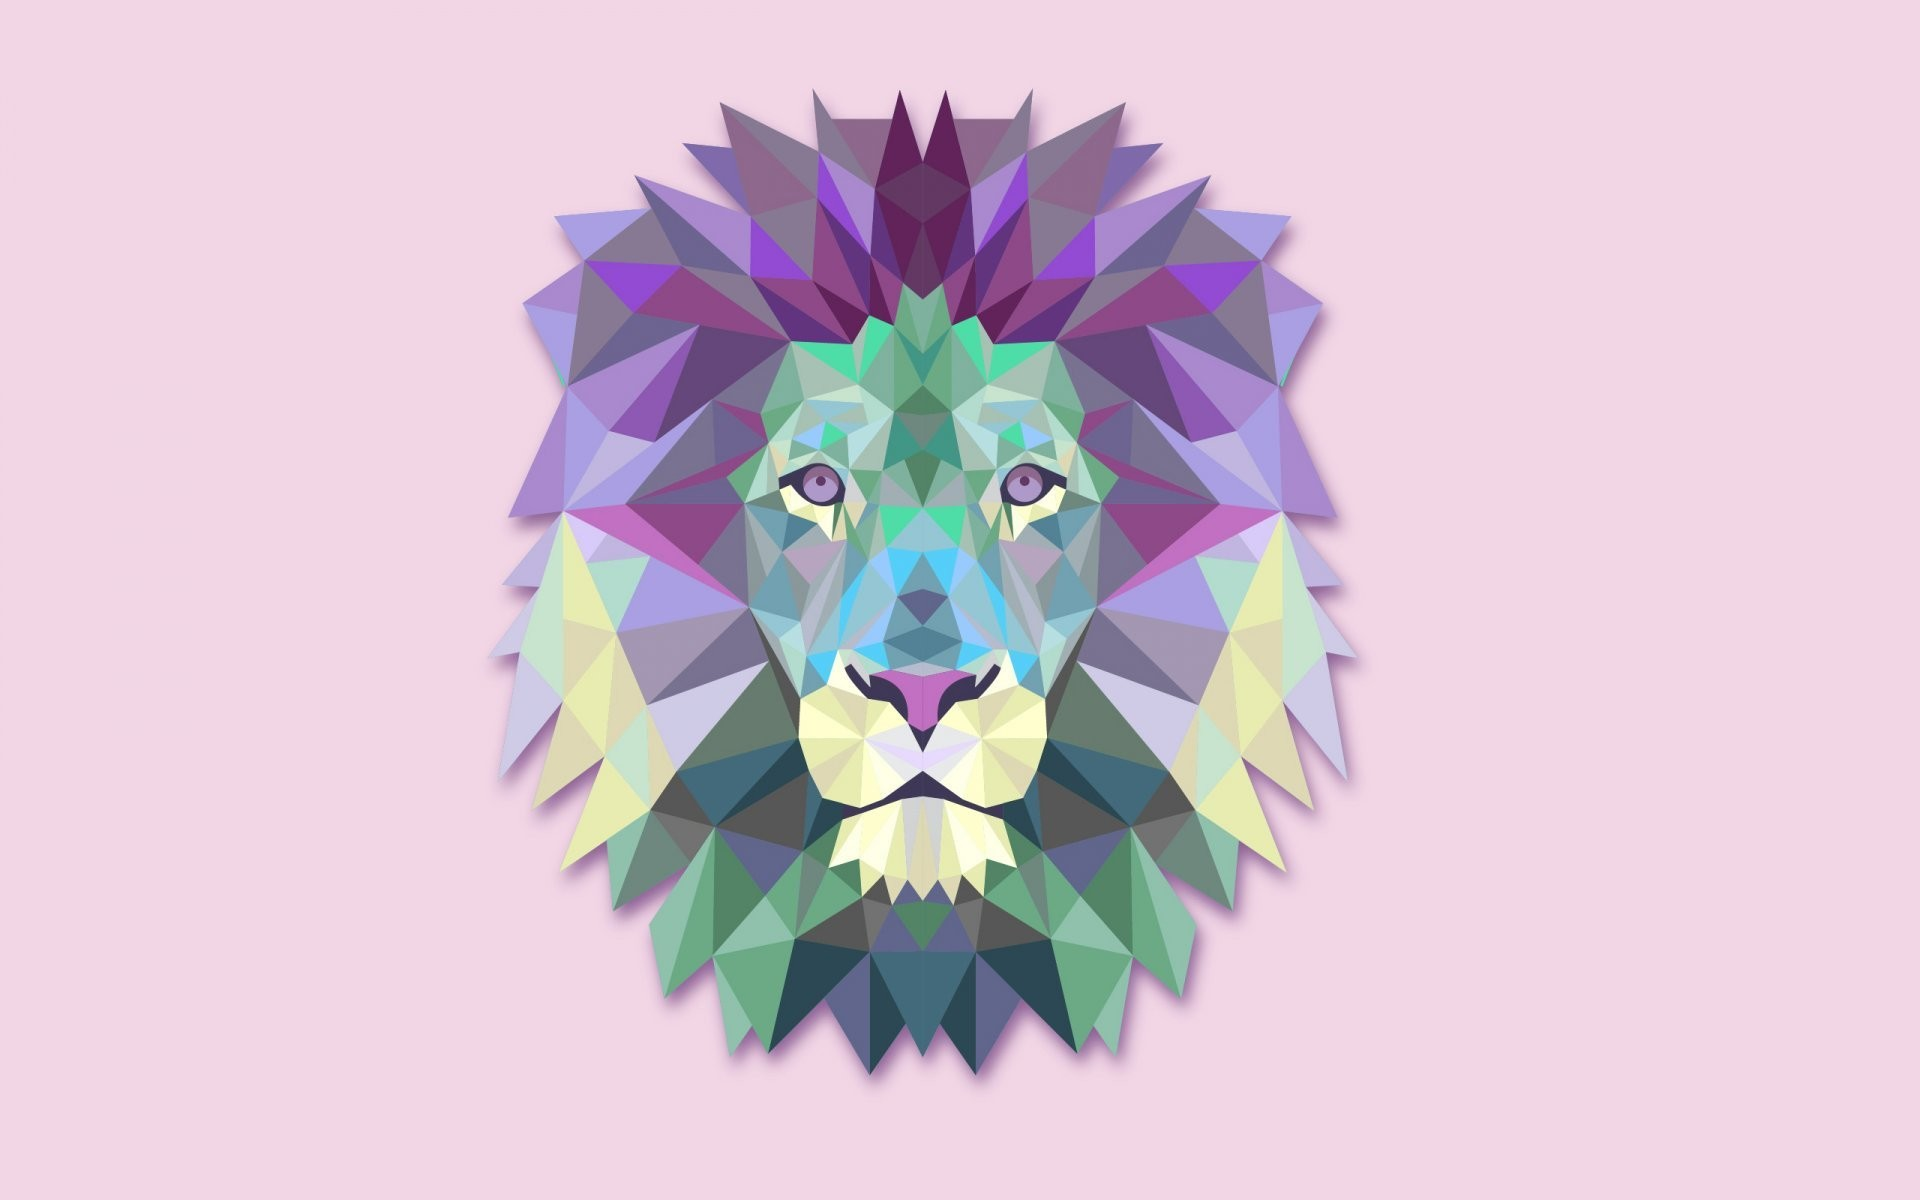 1920x1200 leo lion abstract minimalism light background